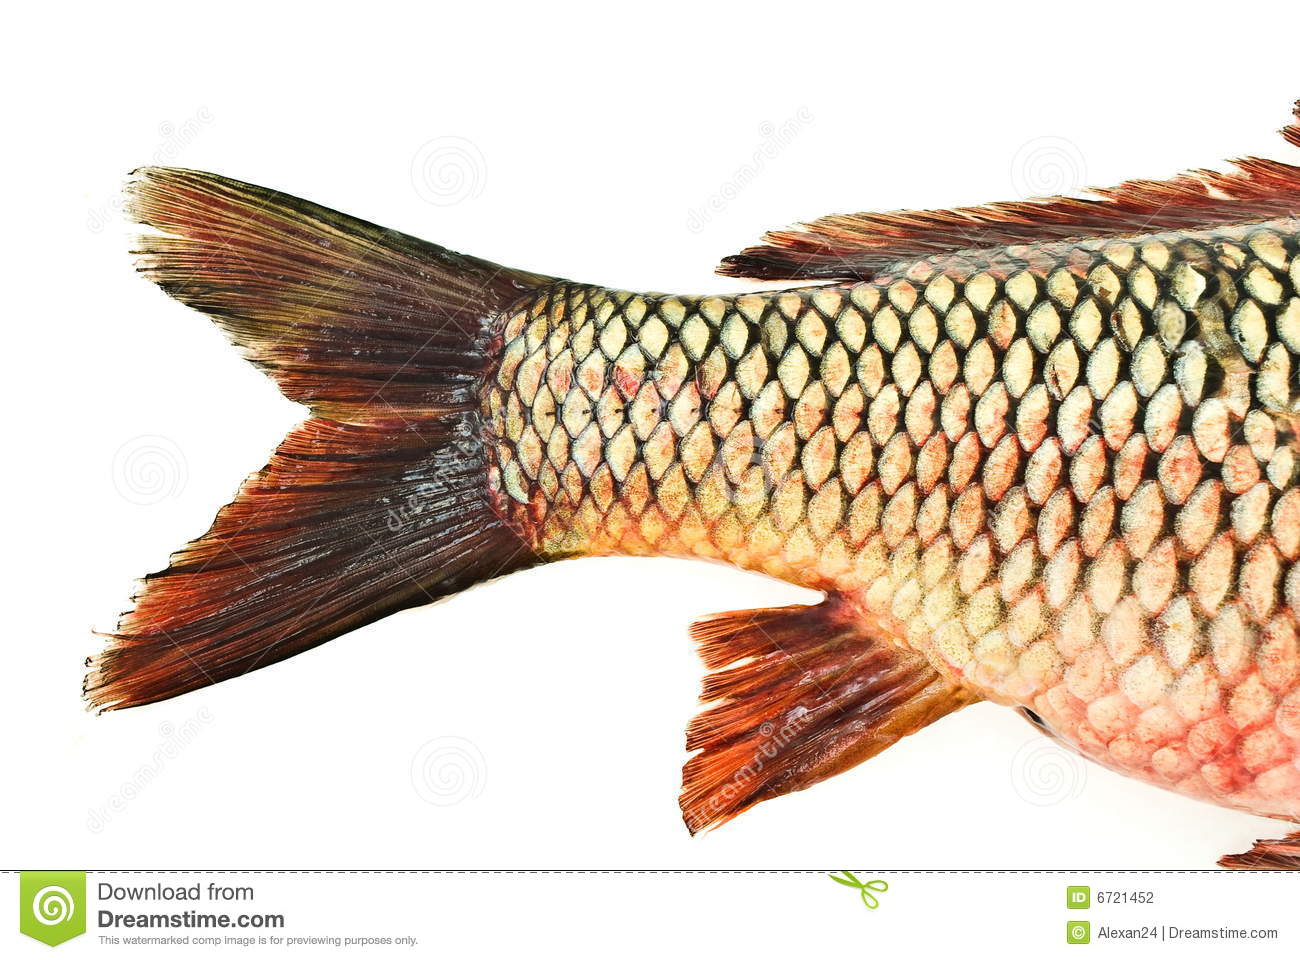 Fish tail carp stock photography image 6721452 for Fish and tails